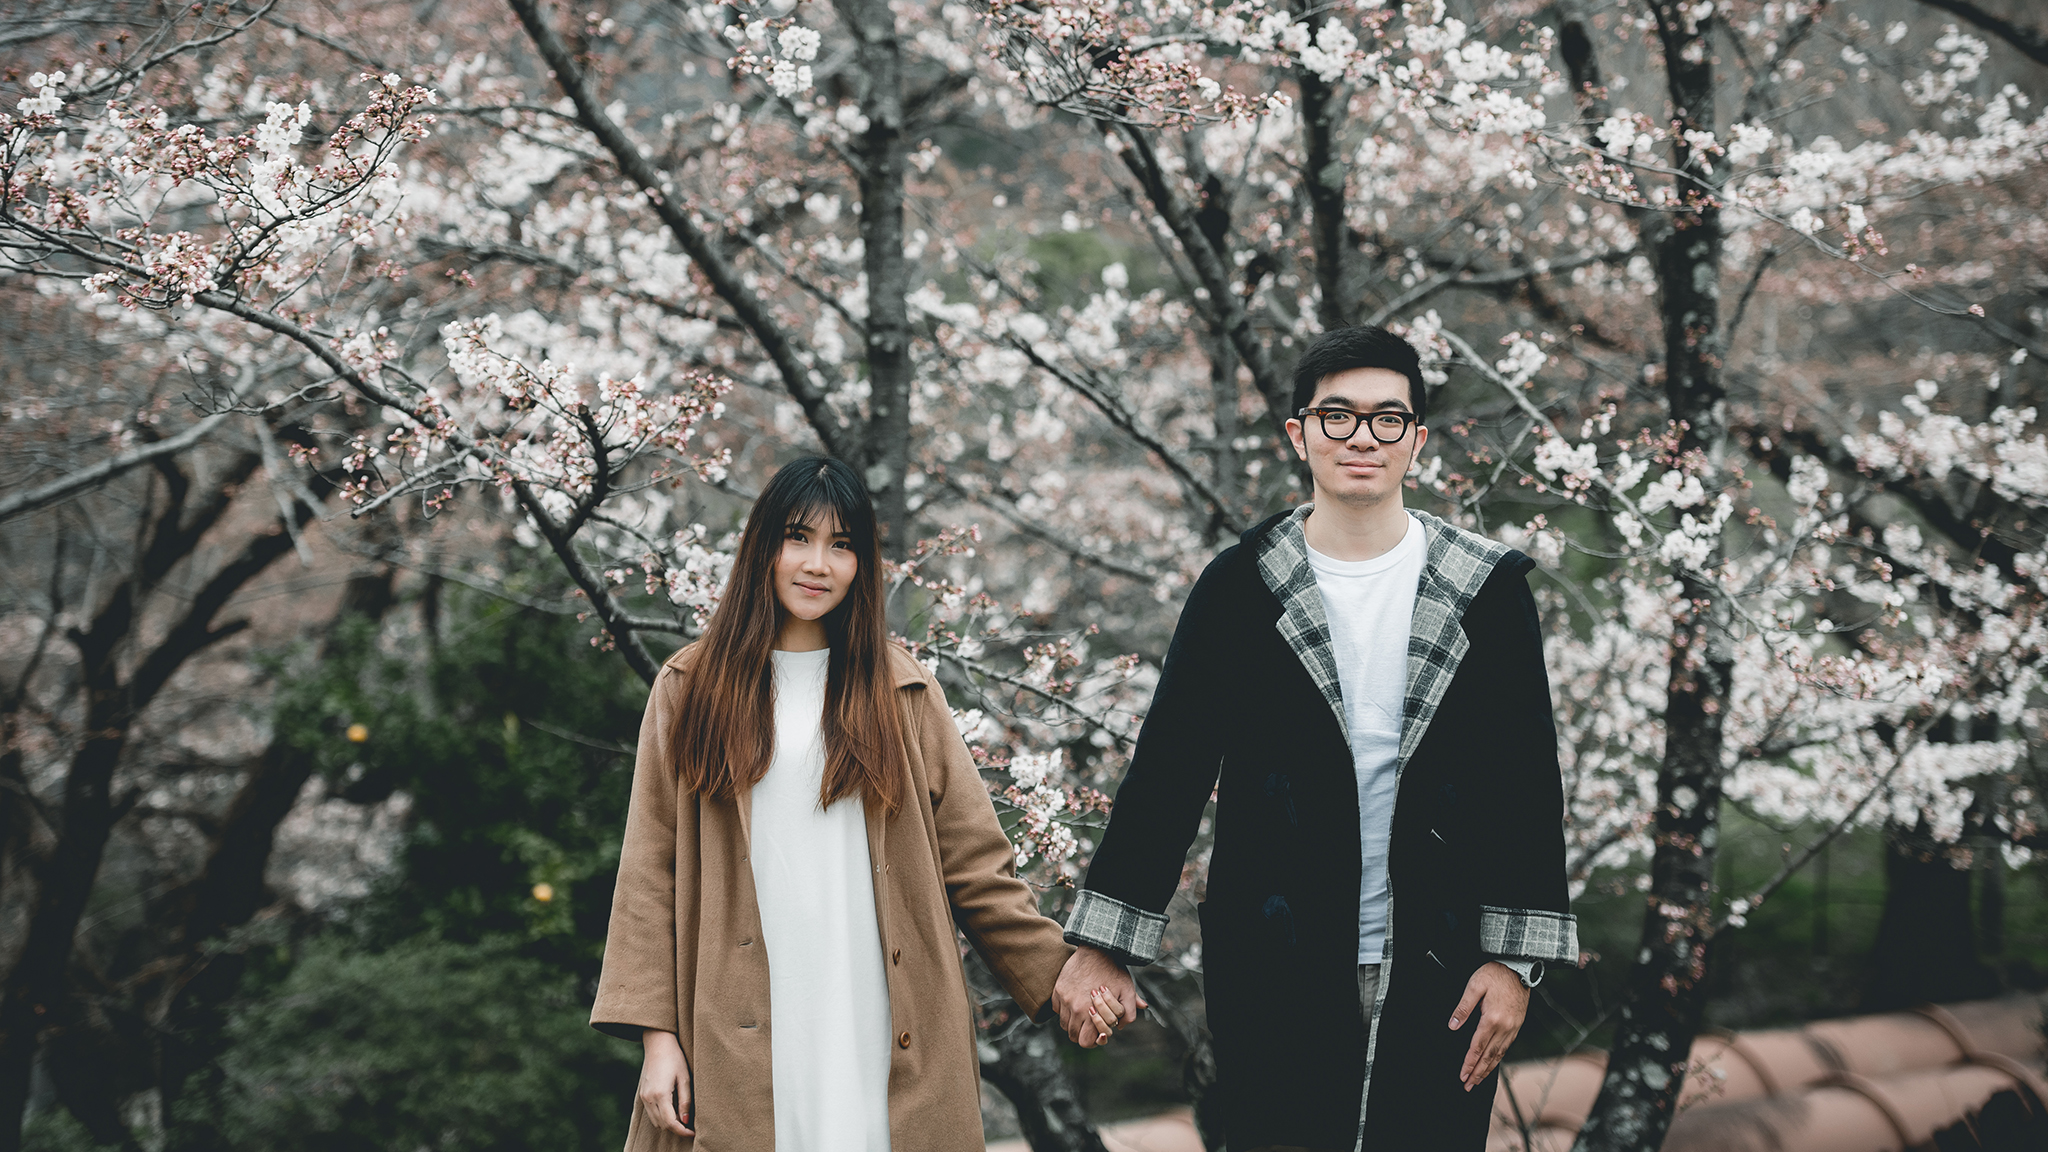 Prewedding Kyoto Keage Incline 00001.JPG